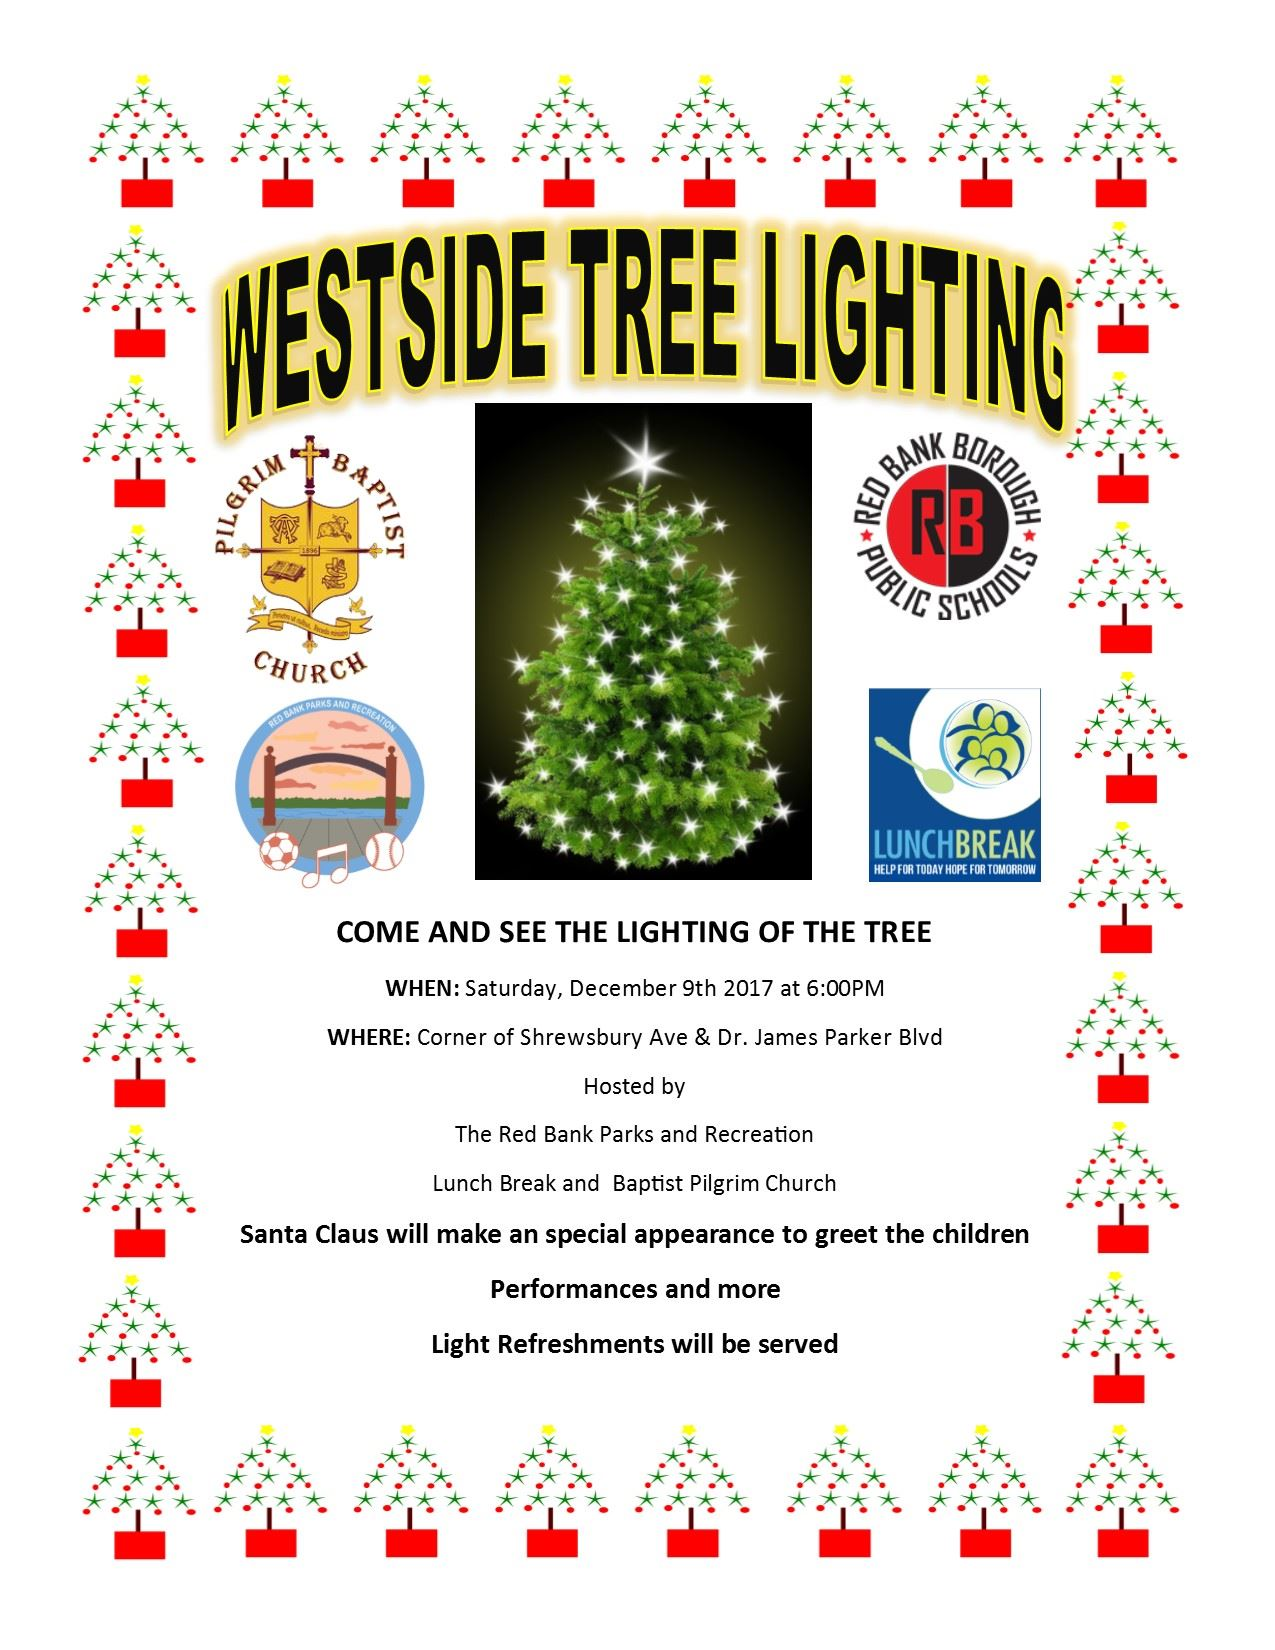 westside tree lighting flyer 2017 english